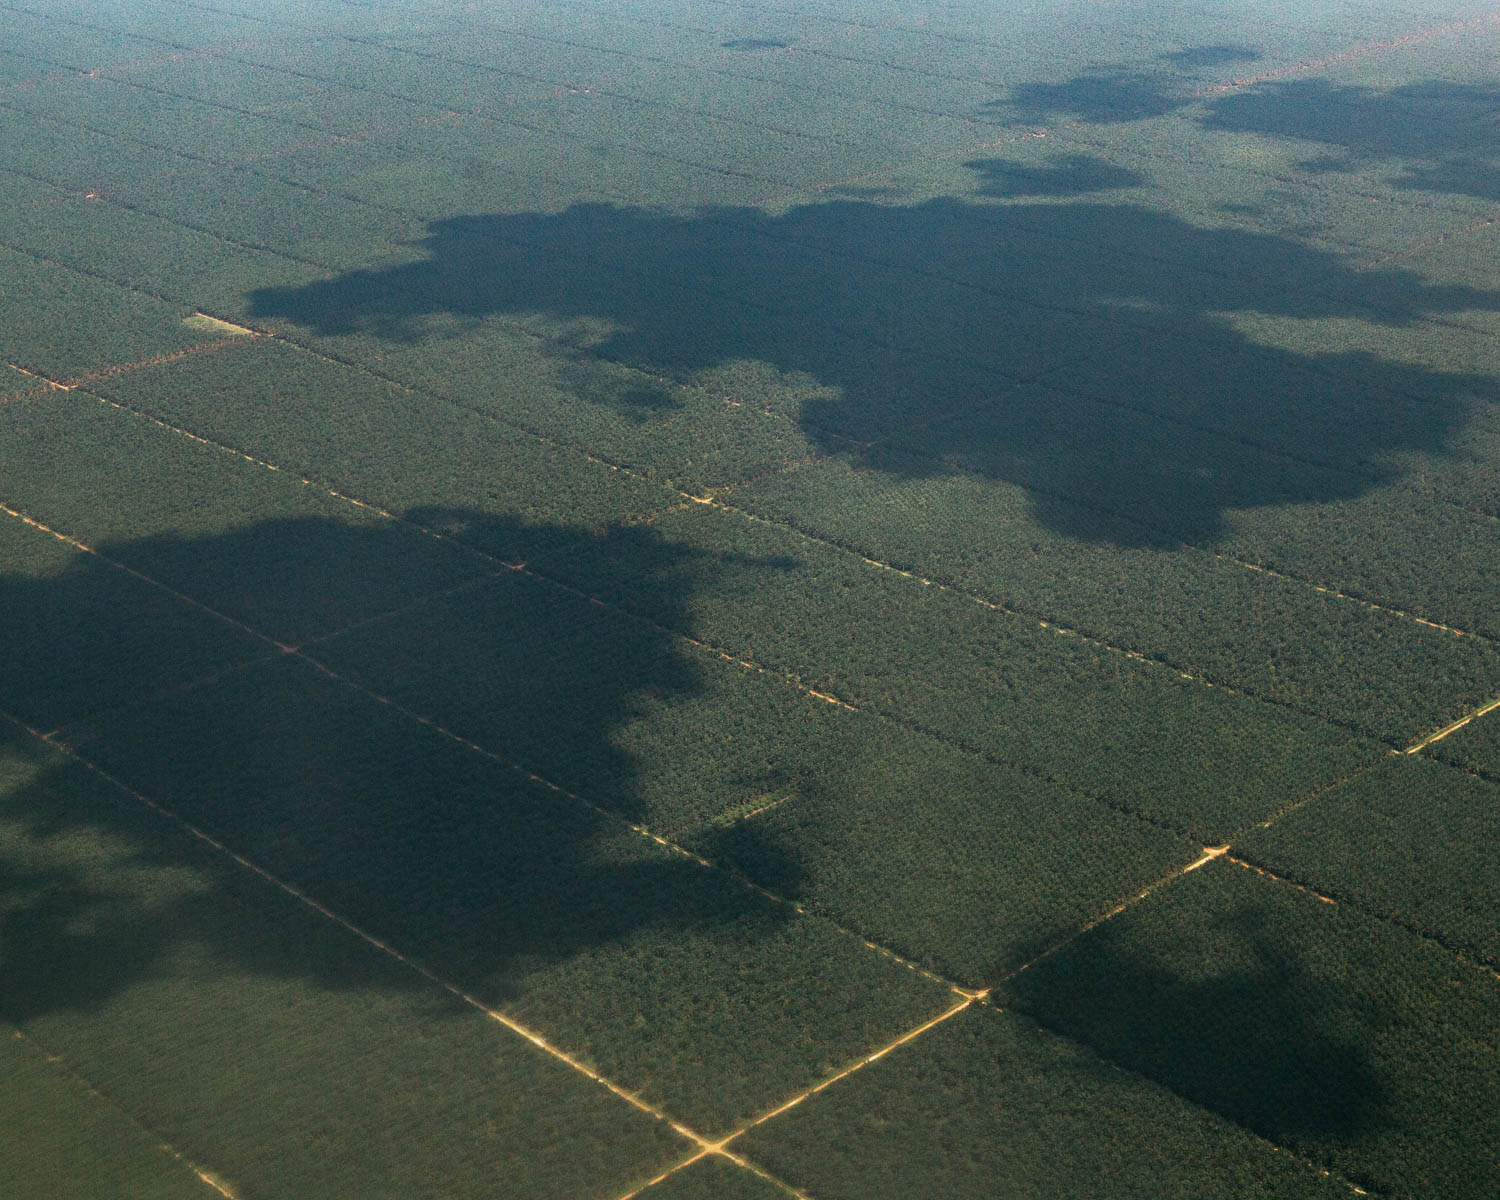 Grids of palm oil plantations in Central Kalimantan as seen from the air. In the last decades, Kalimantan (Indonesian part of Borneo) has lost significant proportion of its forest due to illegal logging and palm oil businesses.